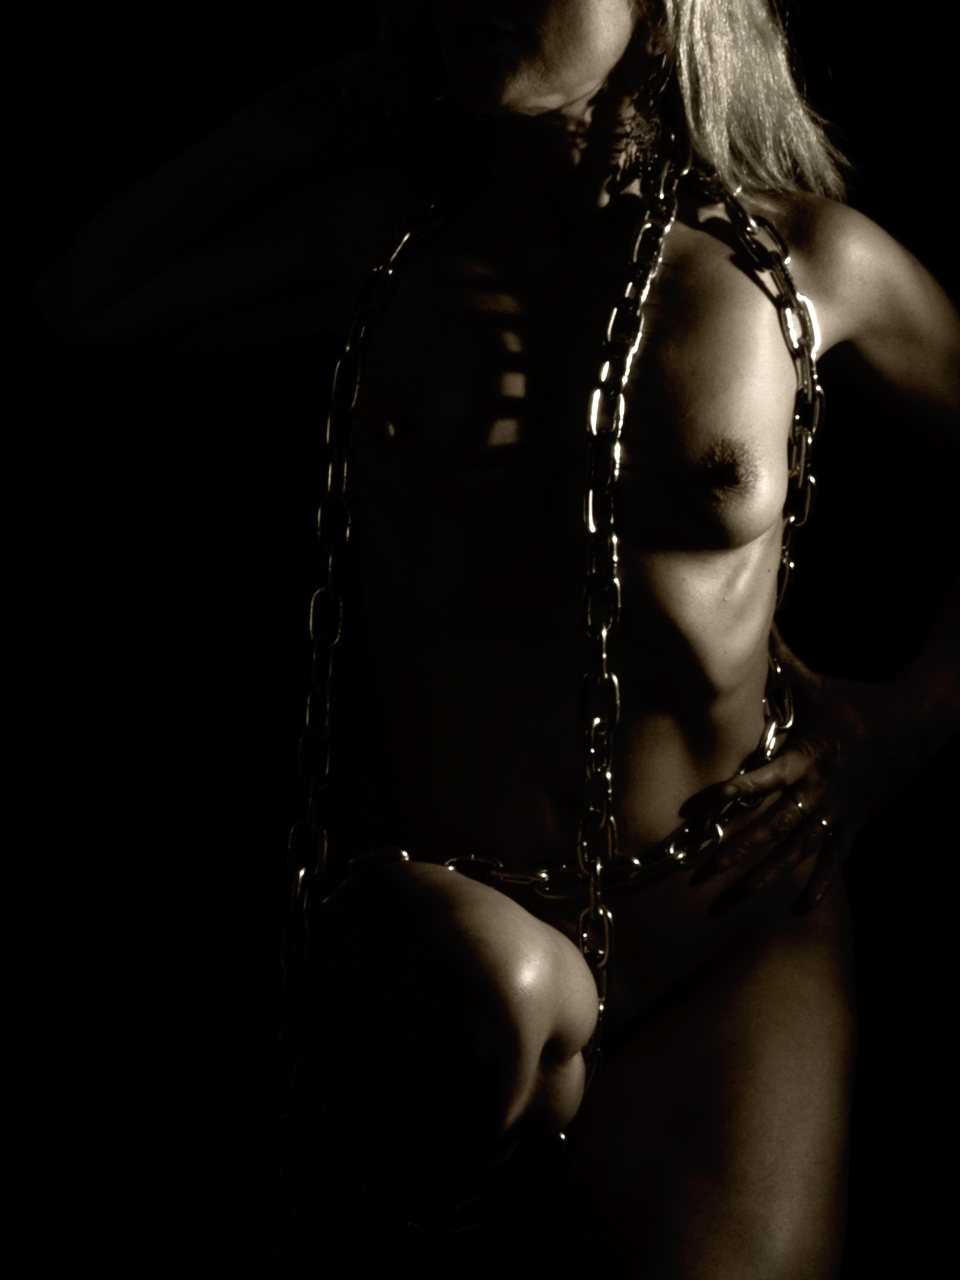 female naked form, chained, deep shadows, crouched